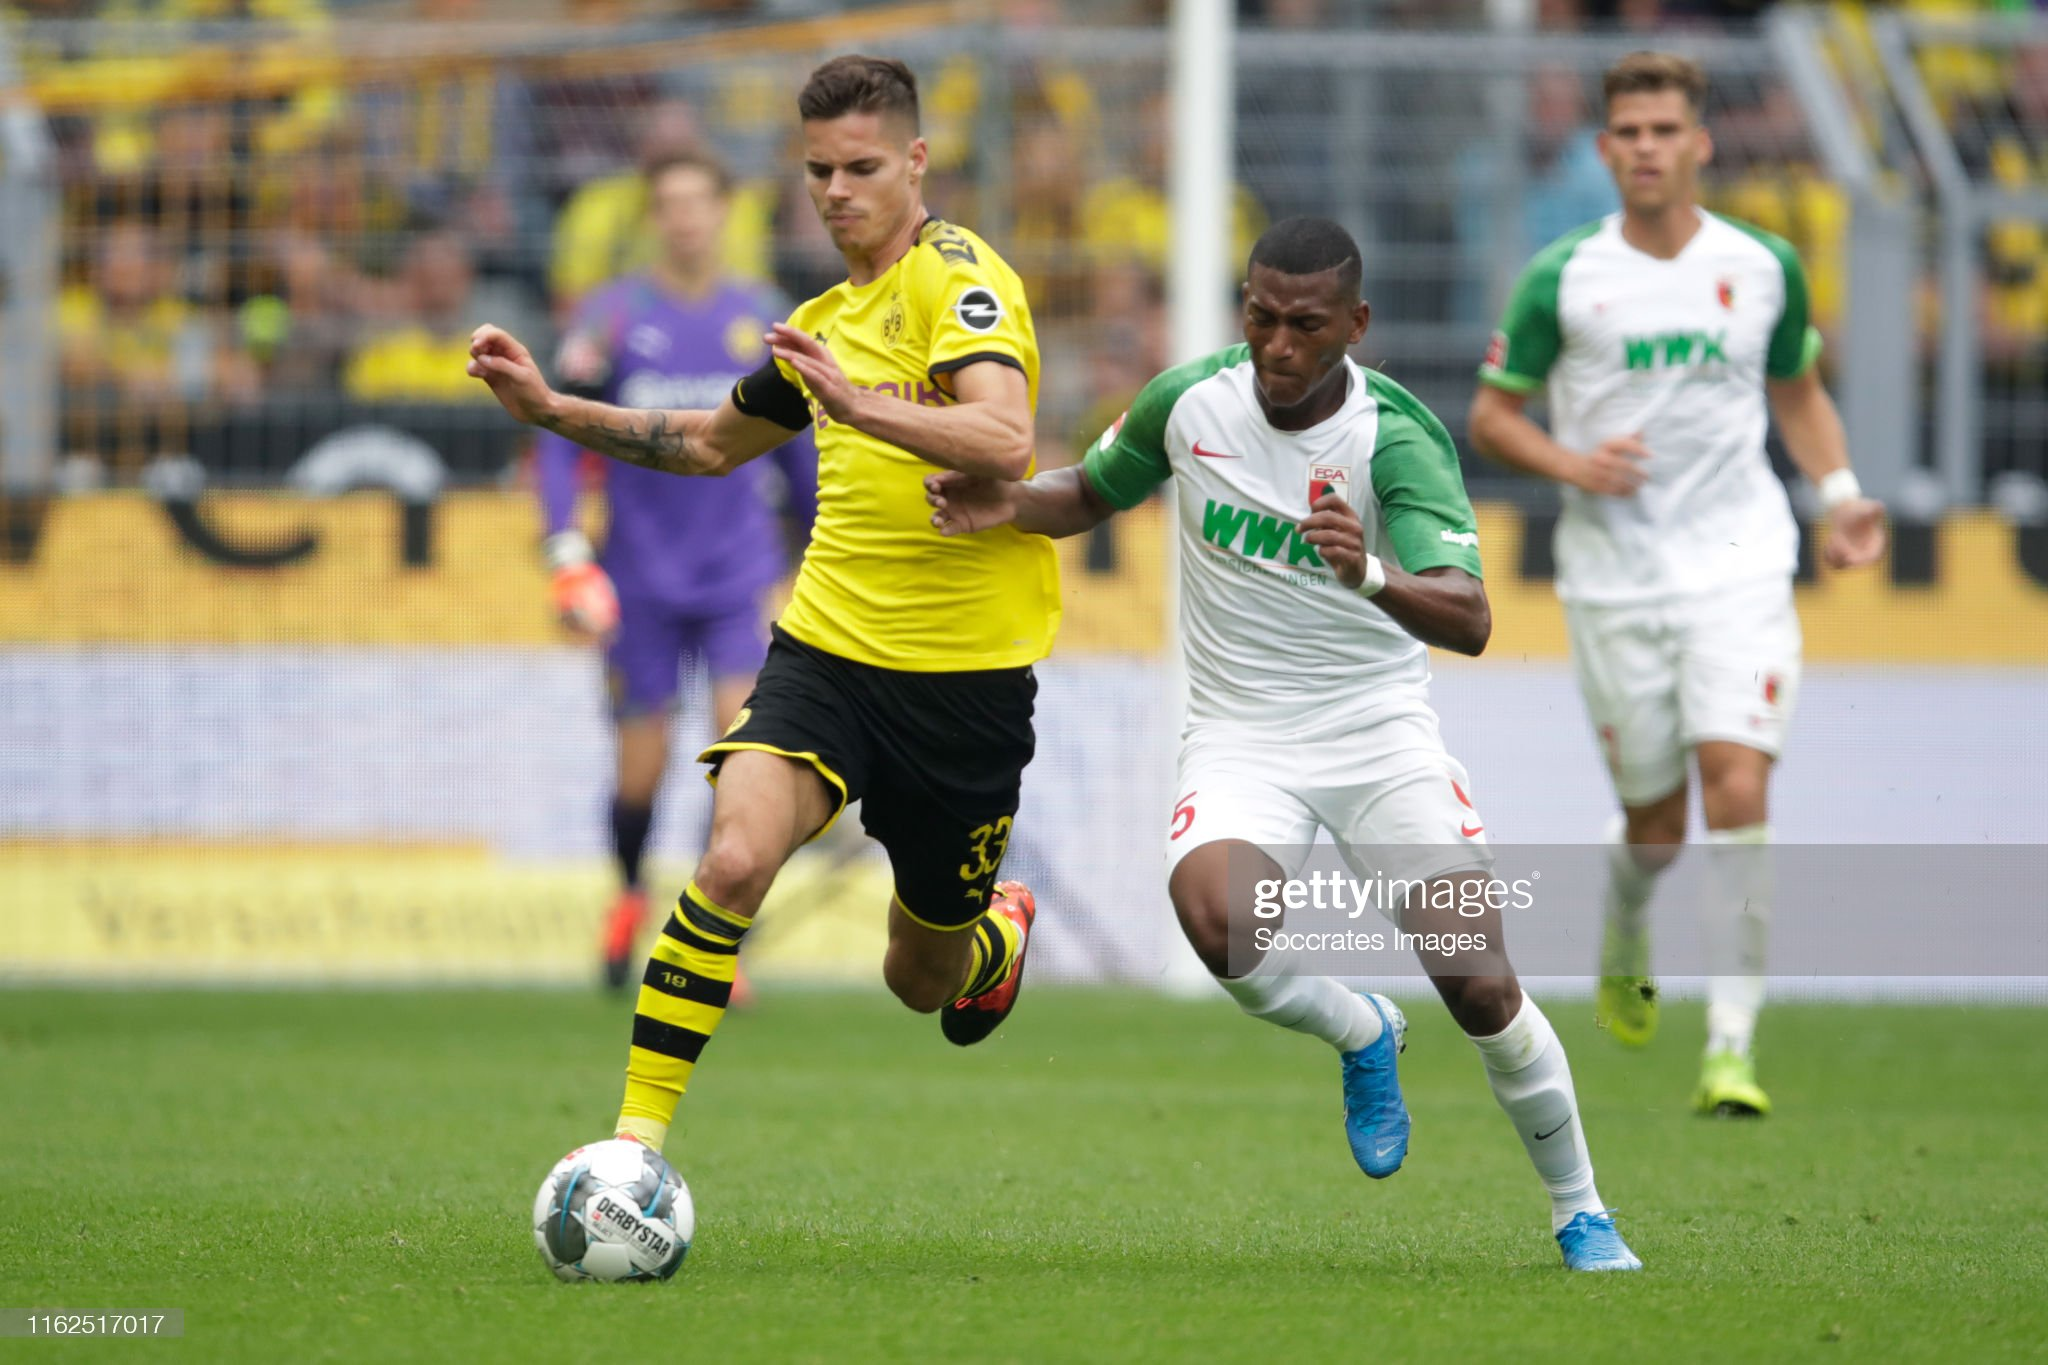 Dortmund v Monchengladbach preview, prediction and odds